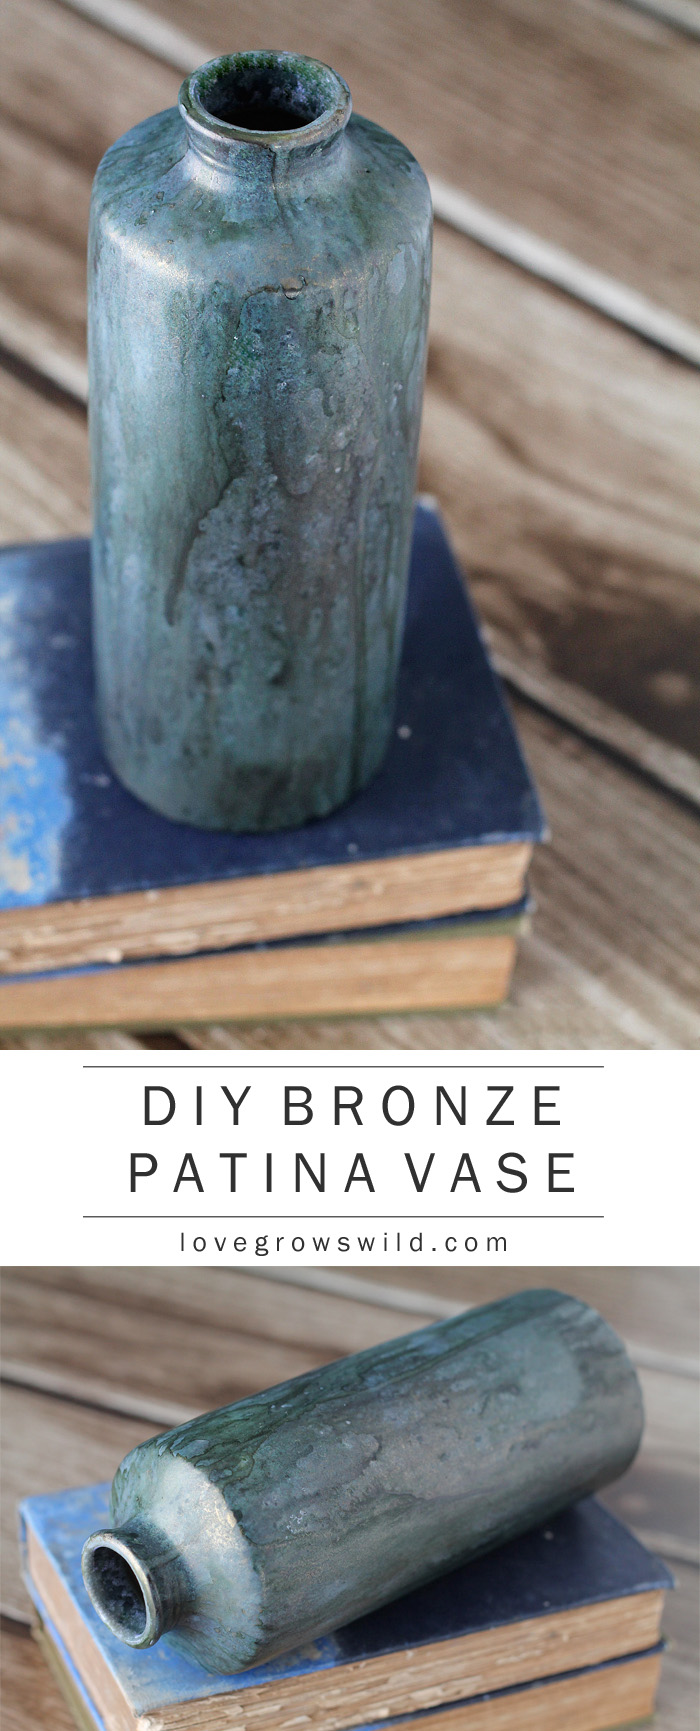 Love this gorgeous bronze patina look! Find out how to DIY the patina at LoveGrowsWild.com